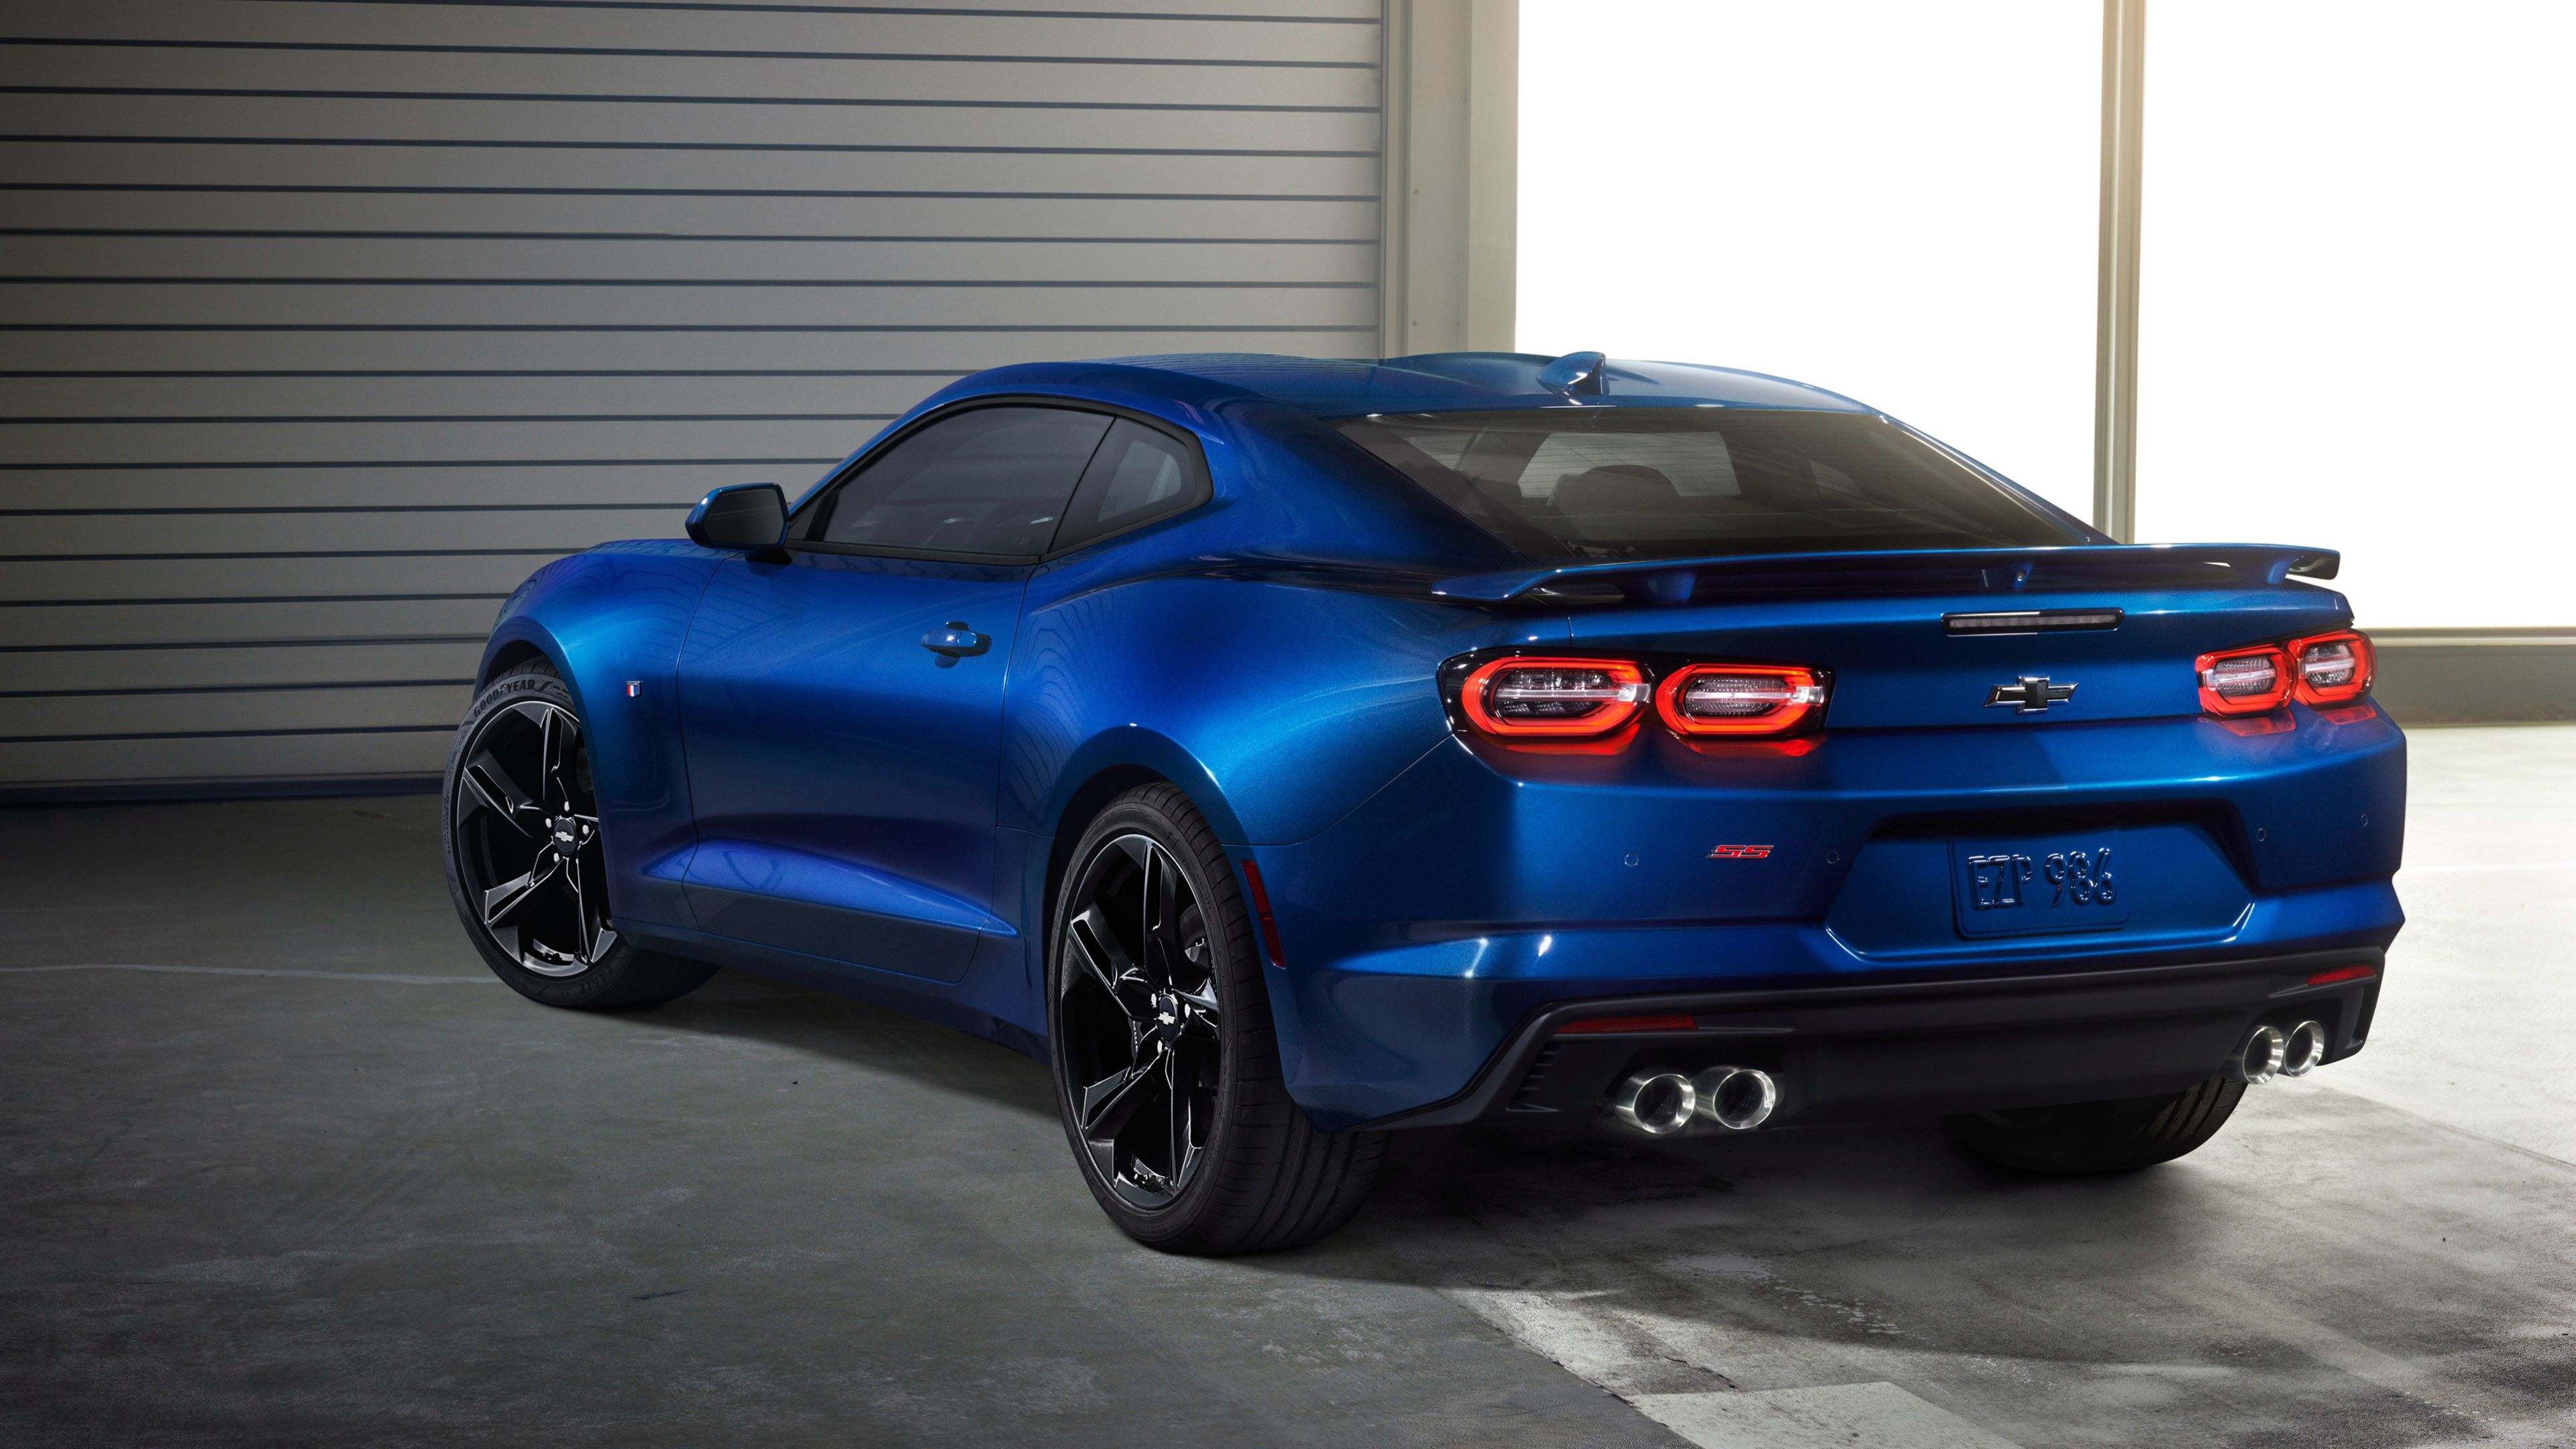 Chevrolet Camaro Ss 2018 Rear Hd Wallpapers Chevrolet Wallpapers